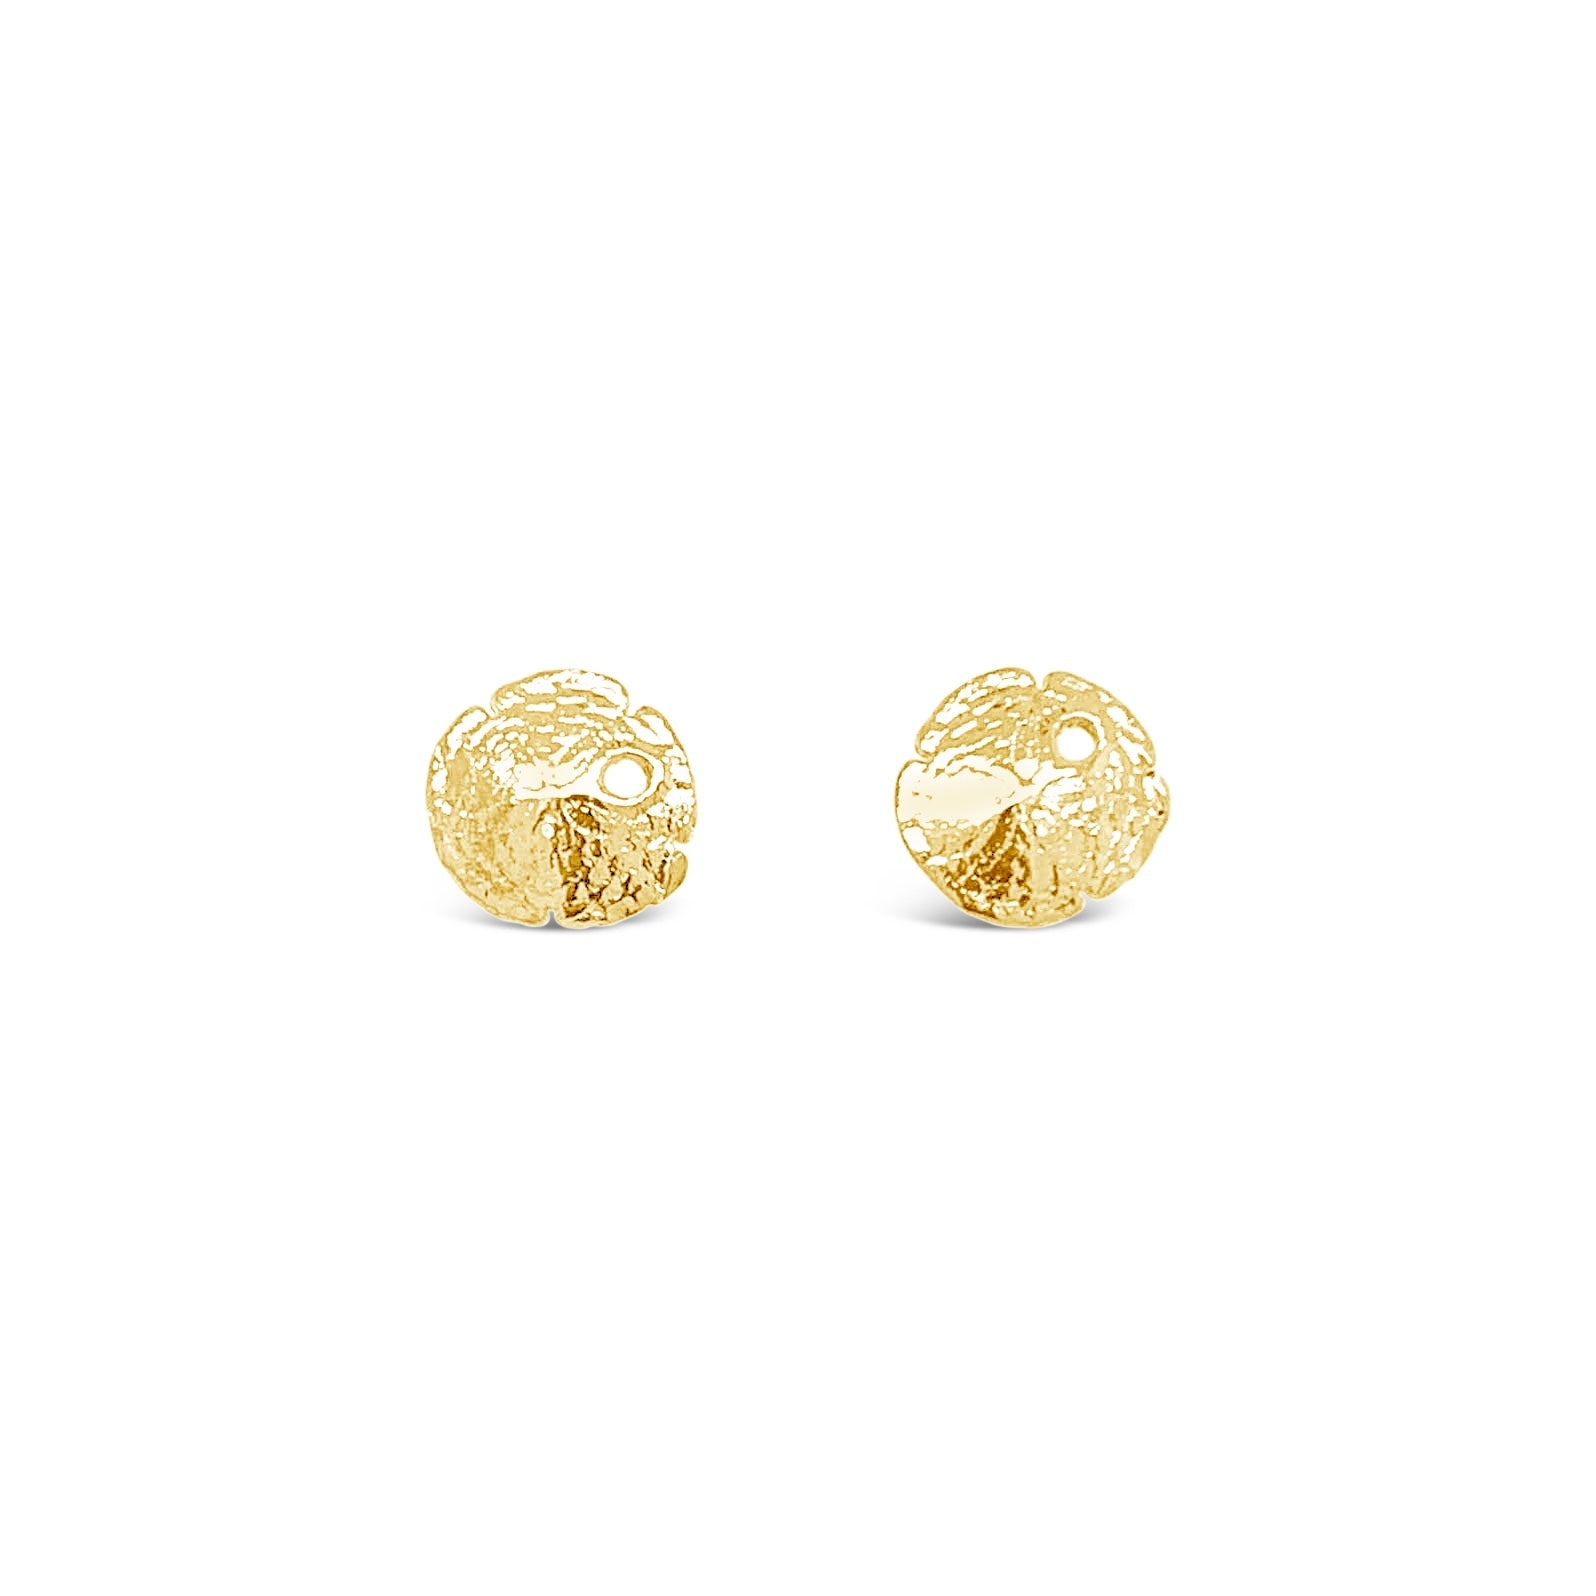 Petite Sand Dollar Earrings